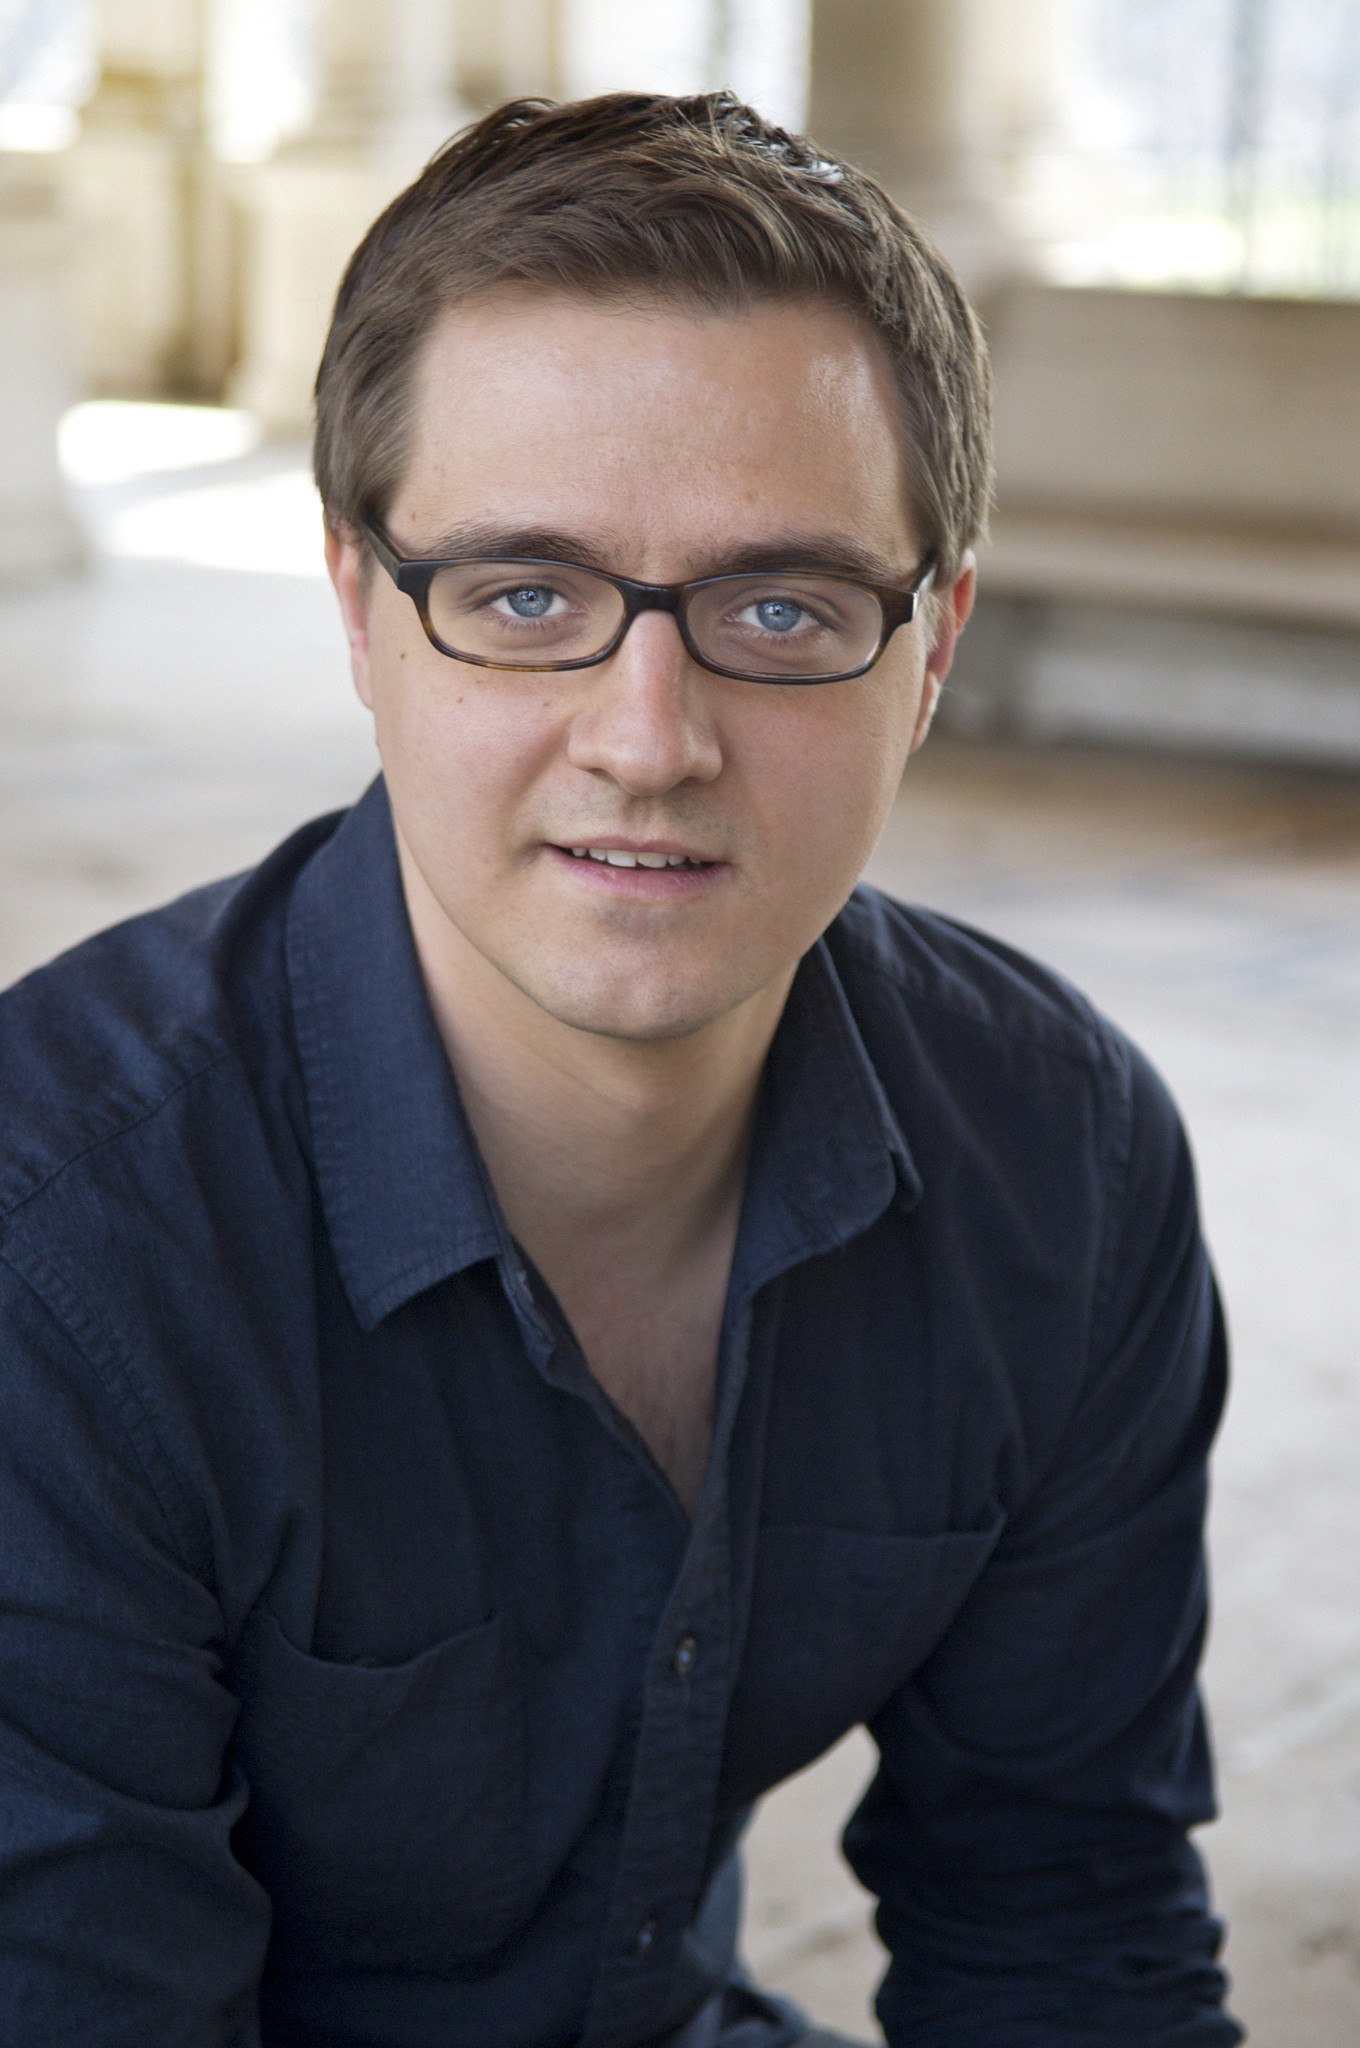 Pundit Chris Hayes's book claims that meritocracy is ...